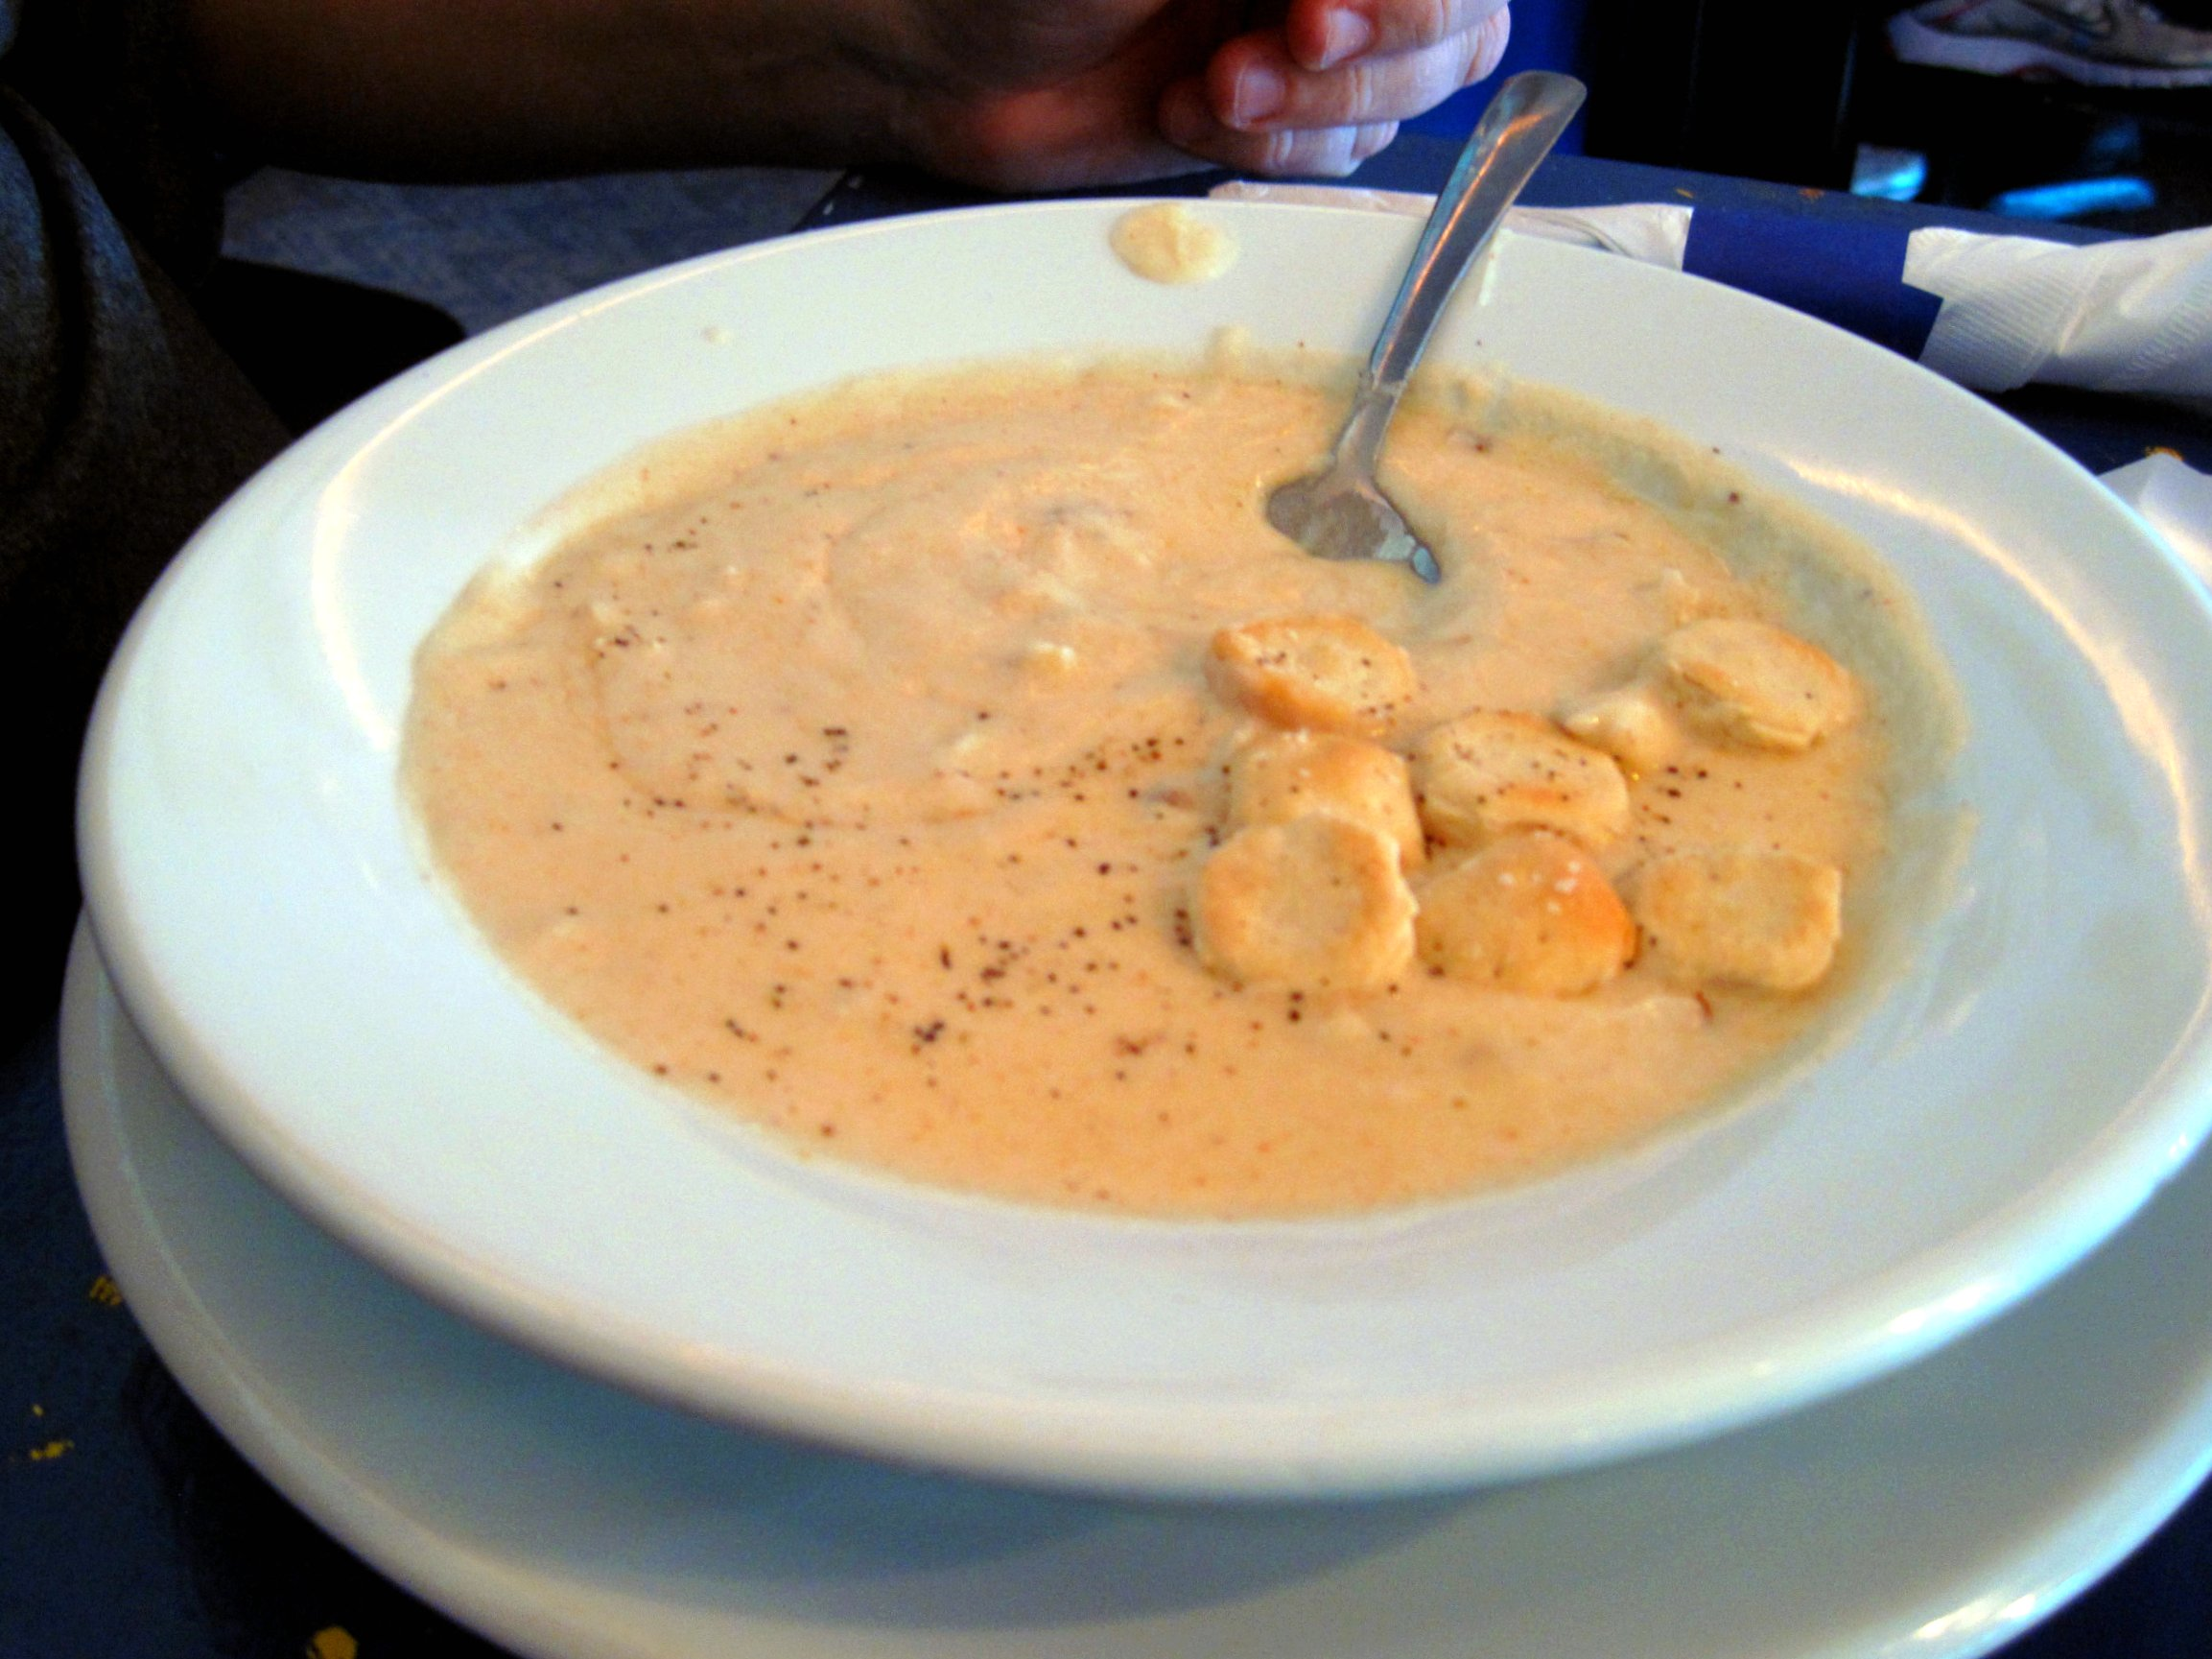 File:She-Crab Soup.jpg - Wikipedia, the free encyclopedia